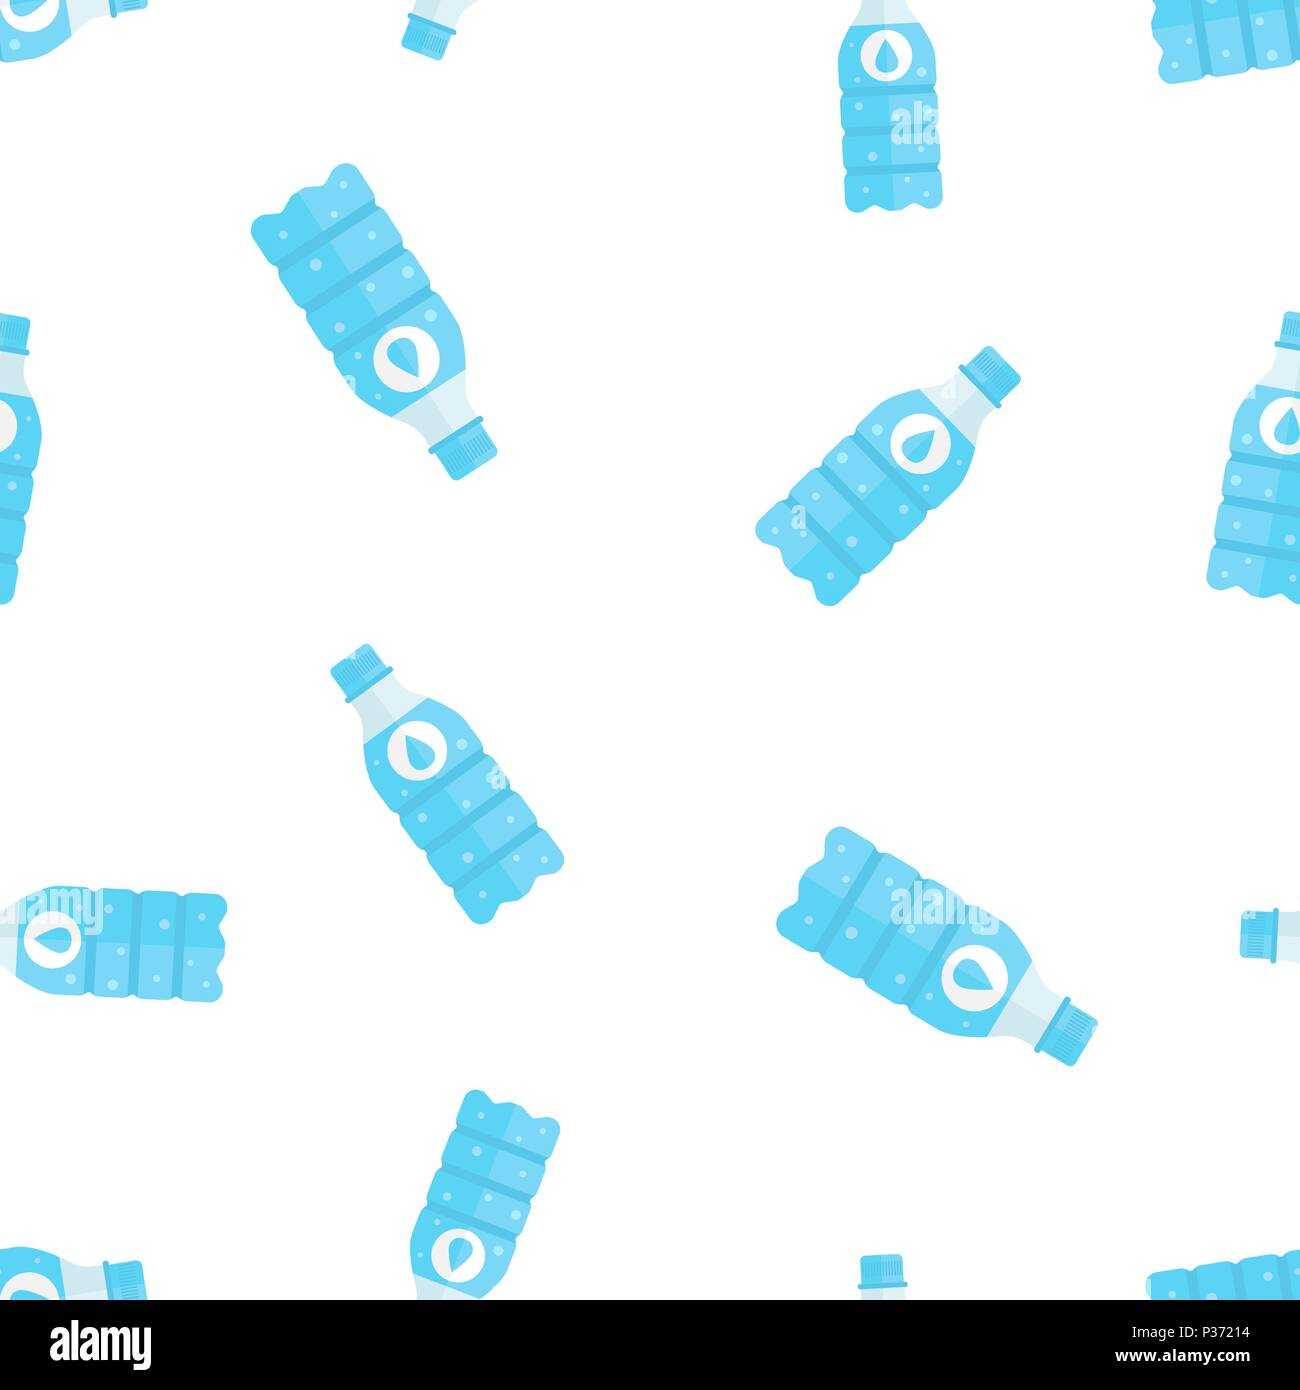 Water bottle icon seamless pattern background. Business concept vector illustration. Water plastic container symbol pattern. - Stock Vector